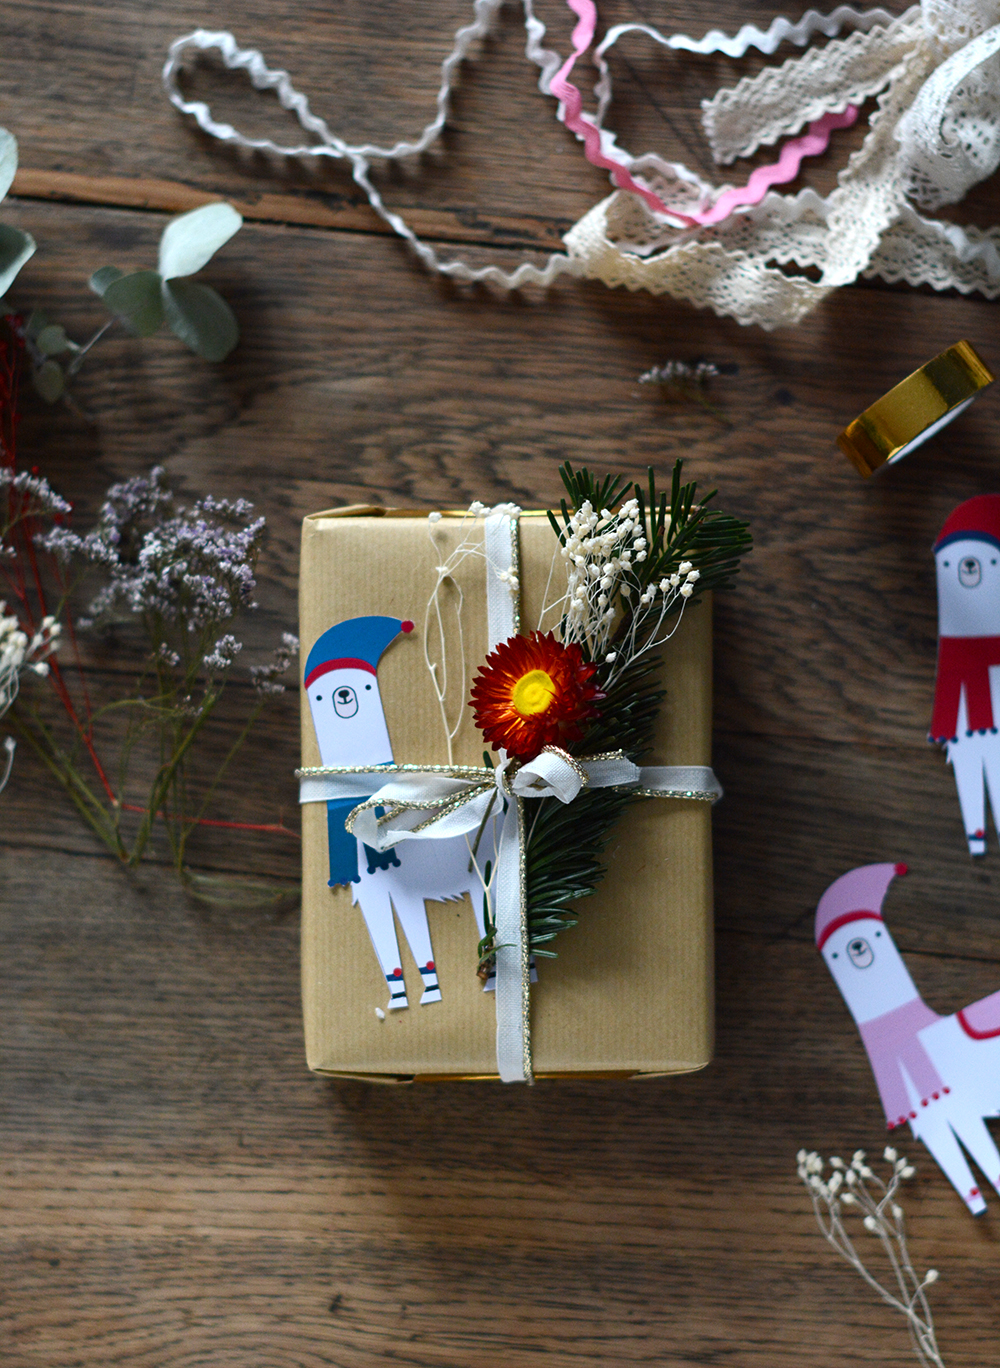 Etiquette cadeau Noel diy a faire soi meme - Blog Sweet Party Day